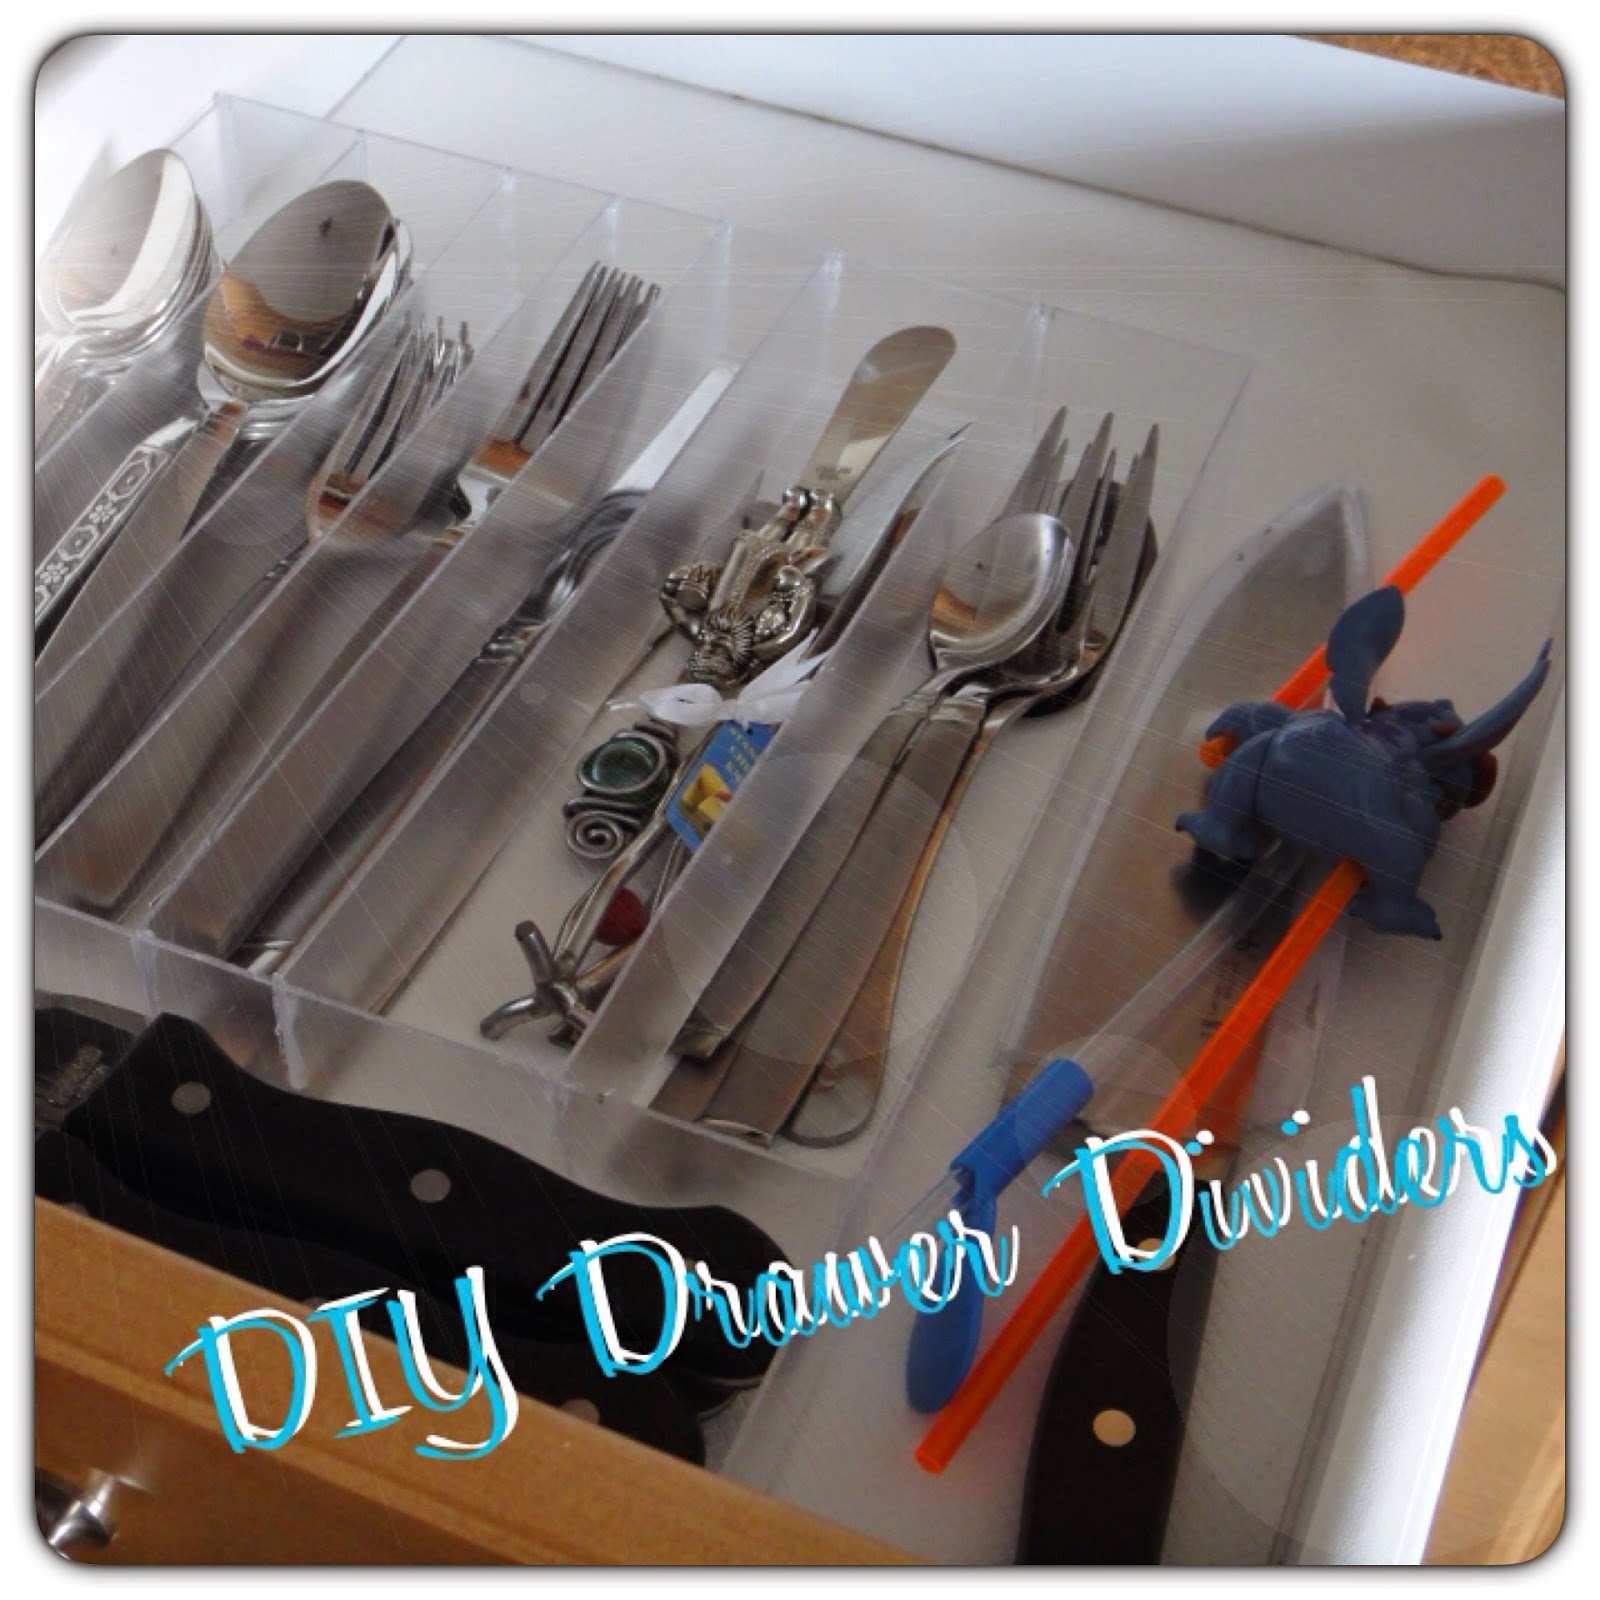 Clear acrylic drawer dividers